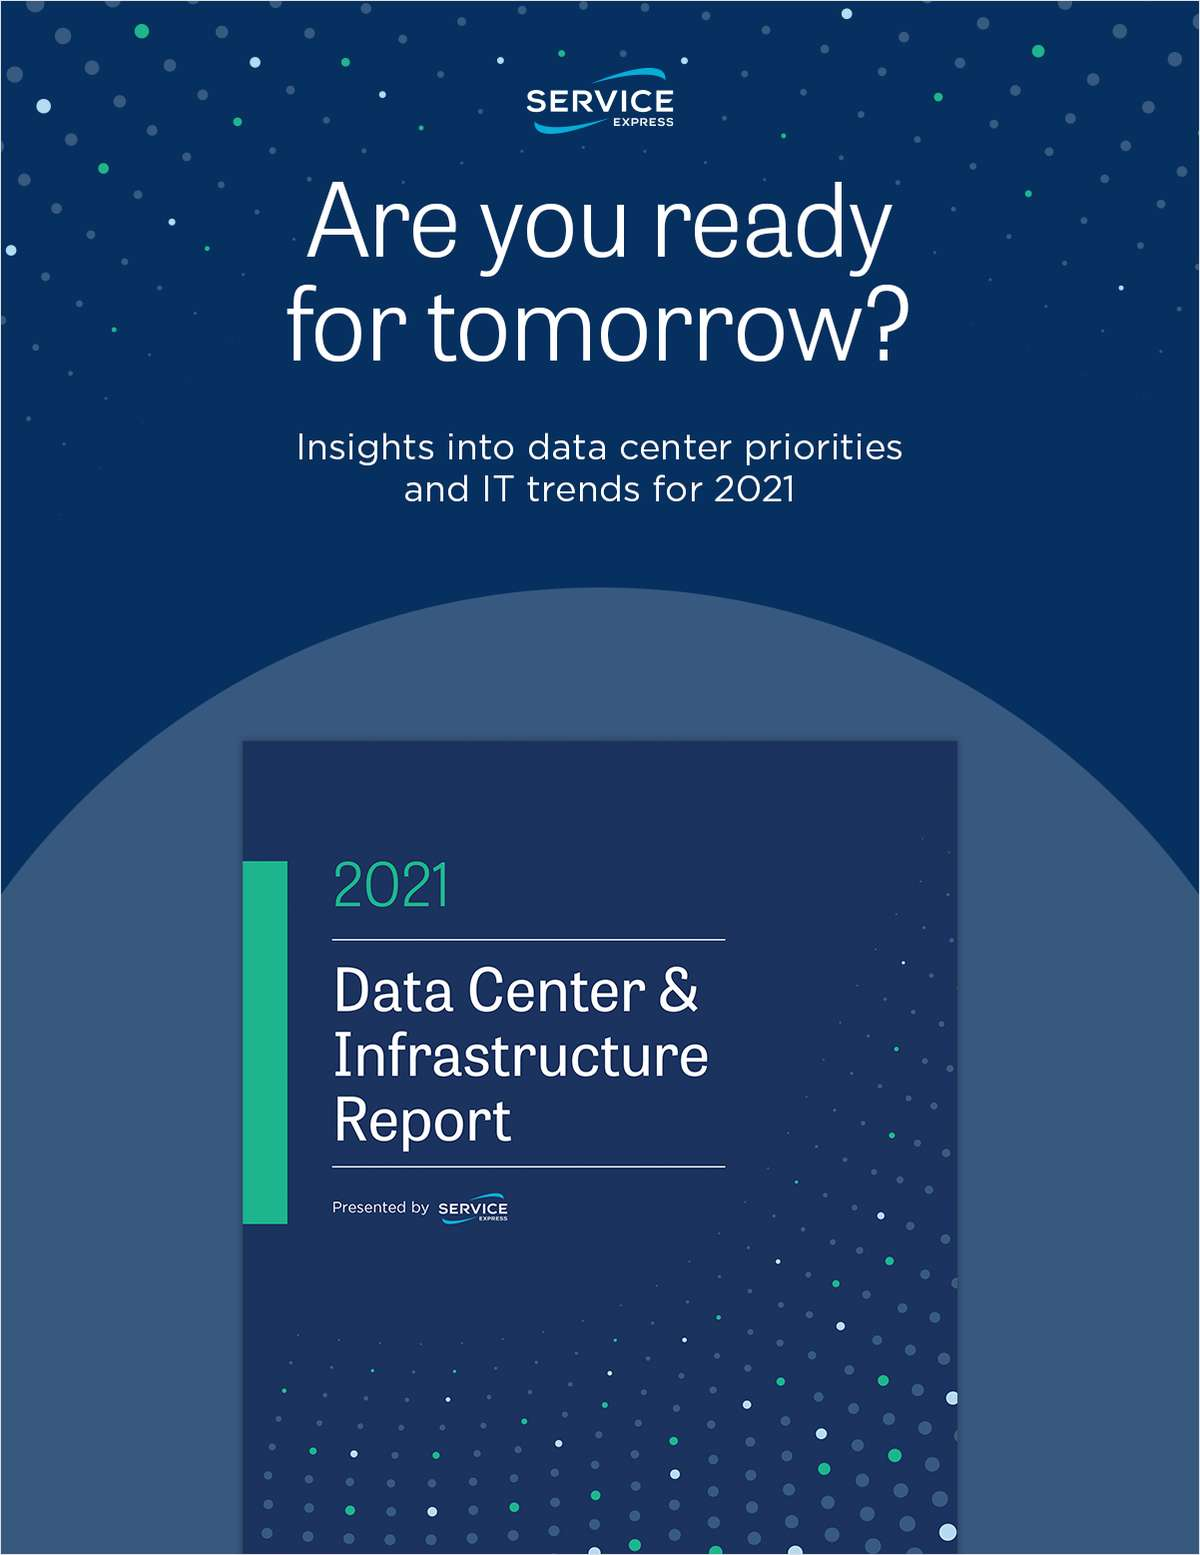 Data Center & Infrastructure Report: Key Findings and Trends for 2021